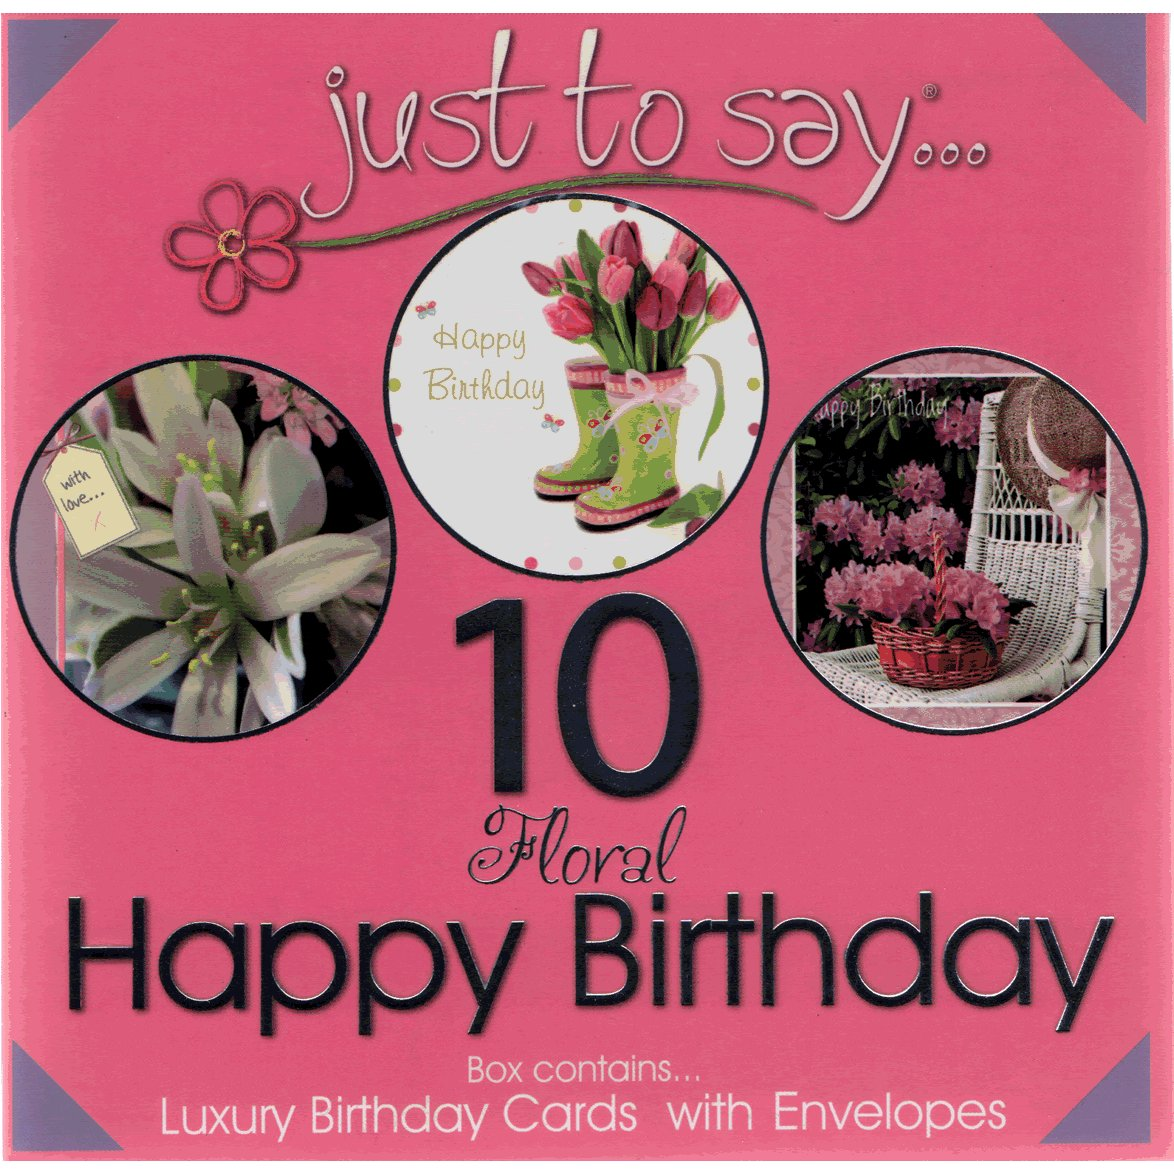 Happy Birthday Cards - Assorted Floral Notecards and Envelopes Boxed Set of 10